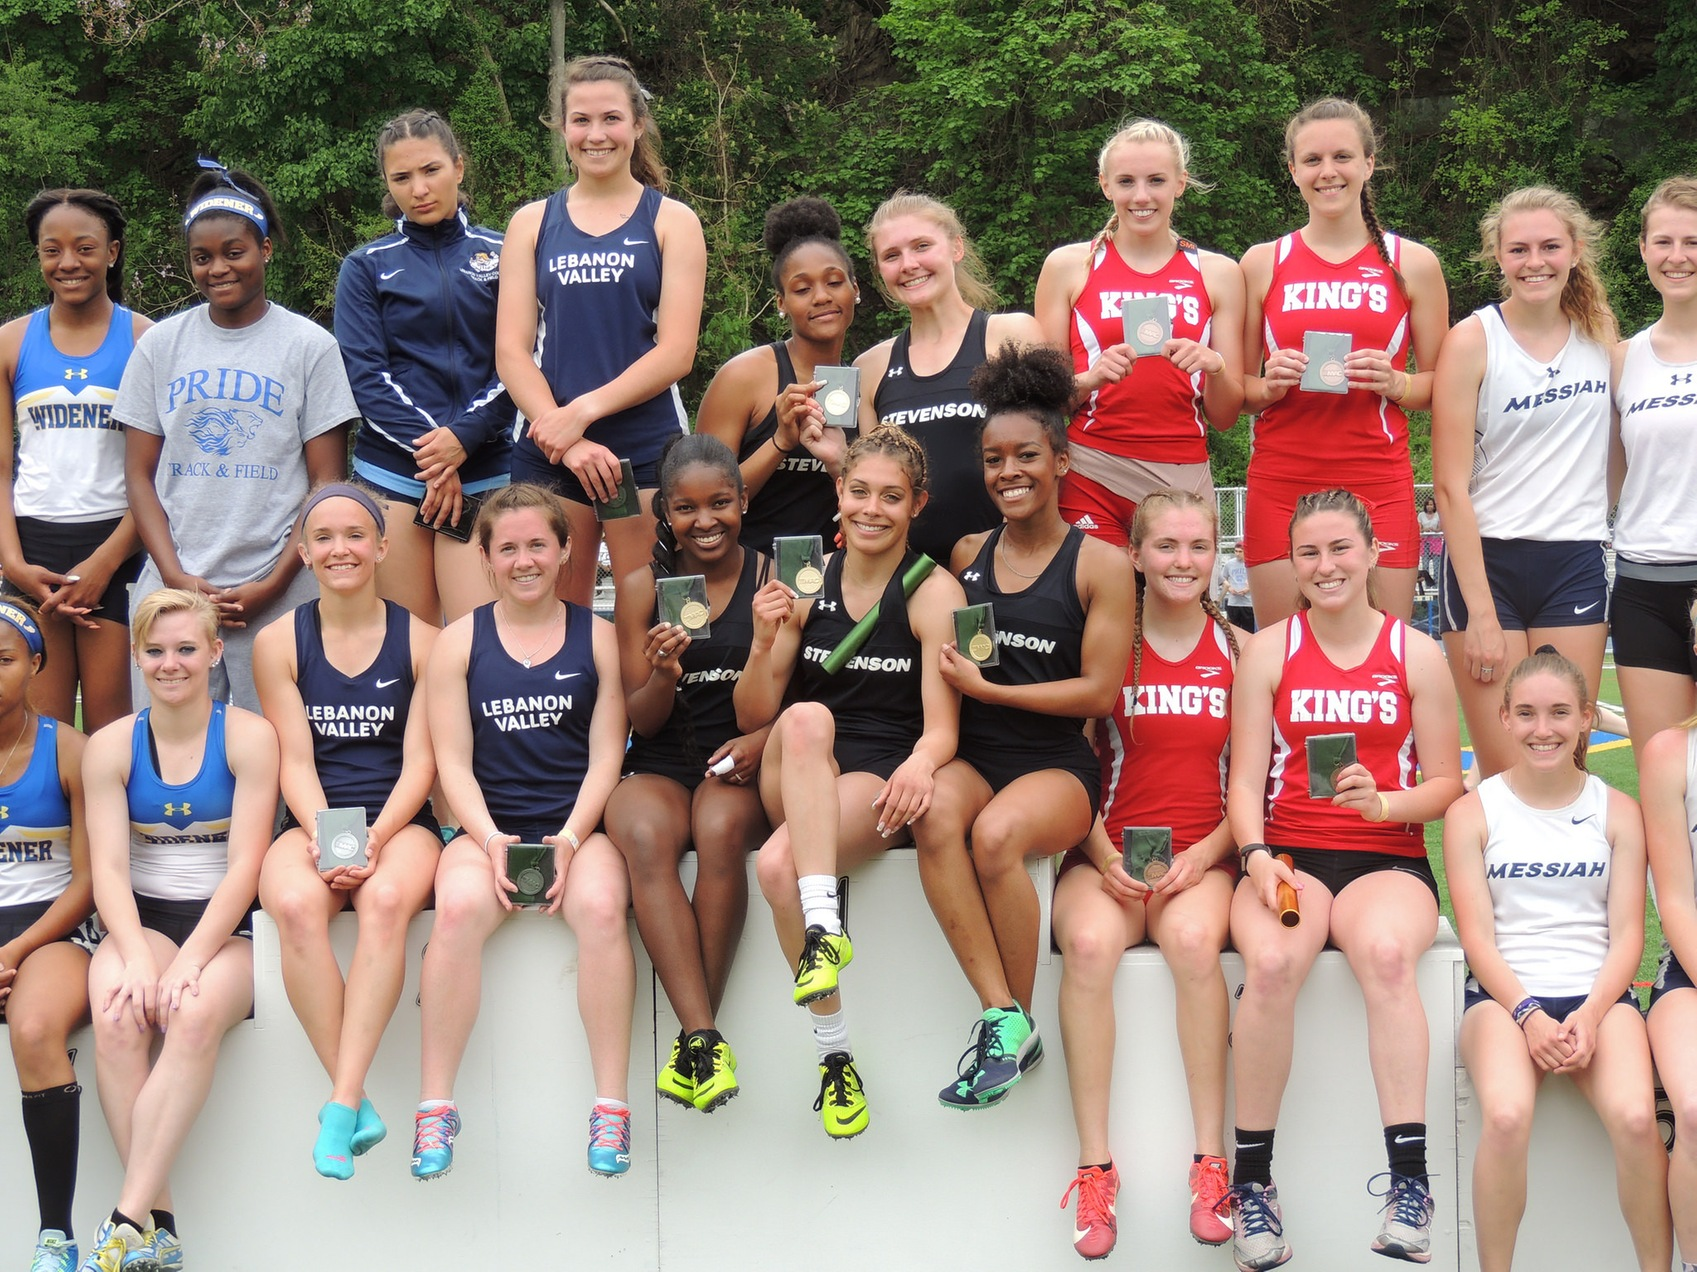 Women's Track Takes Second at MAC Championships, Panek Wins Rookie of the Year honors